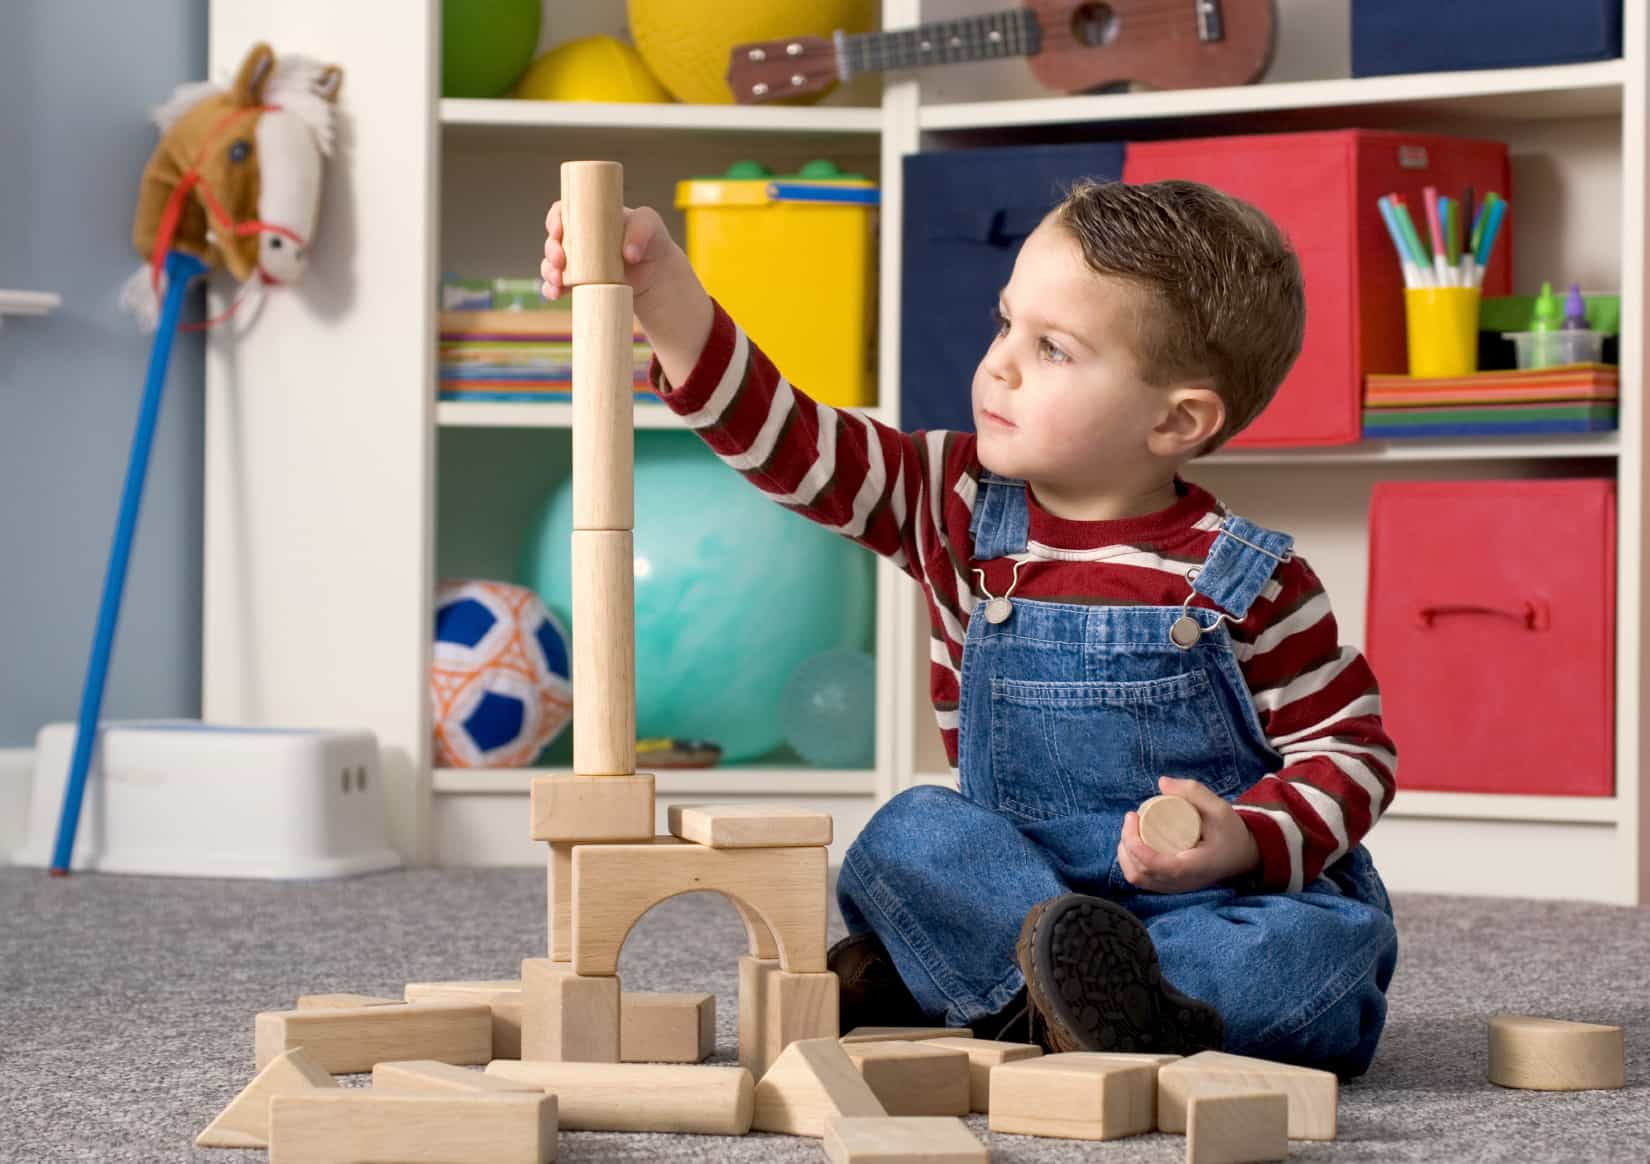 3 Year Old Developmental Toys : Your child s cognitive development catering for their needs